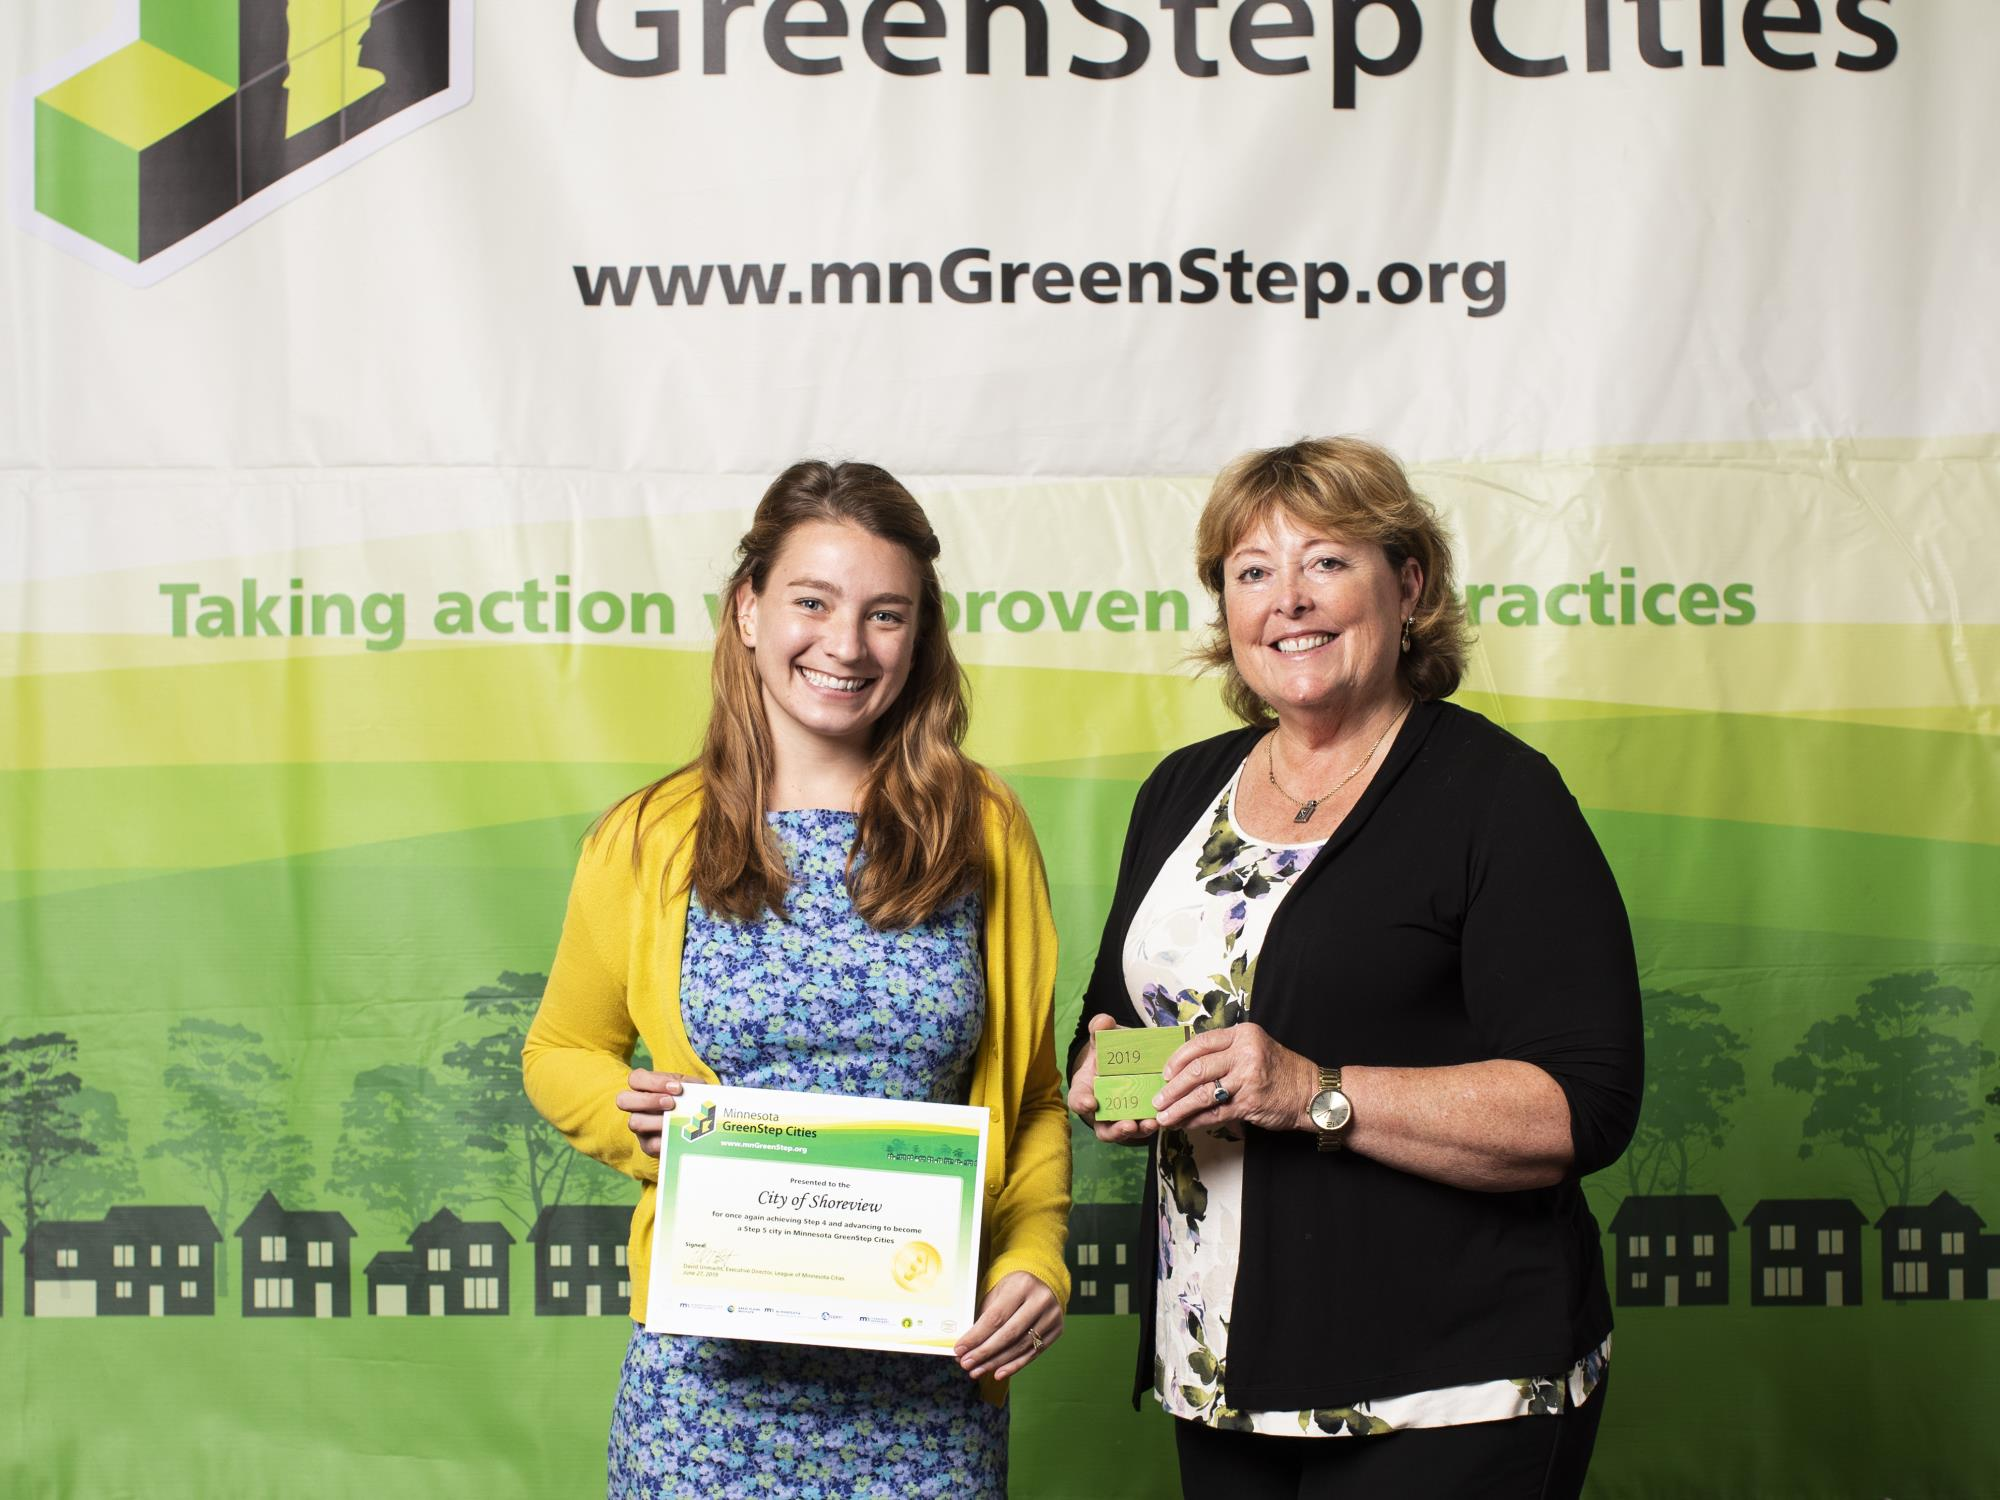 Green step city award presentation